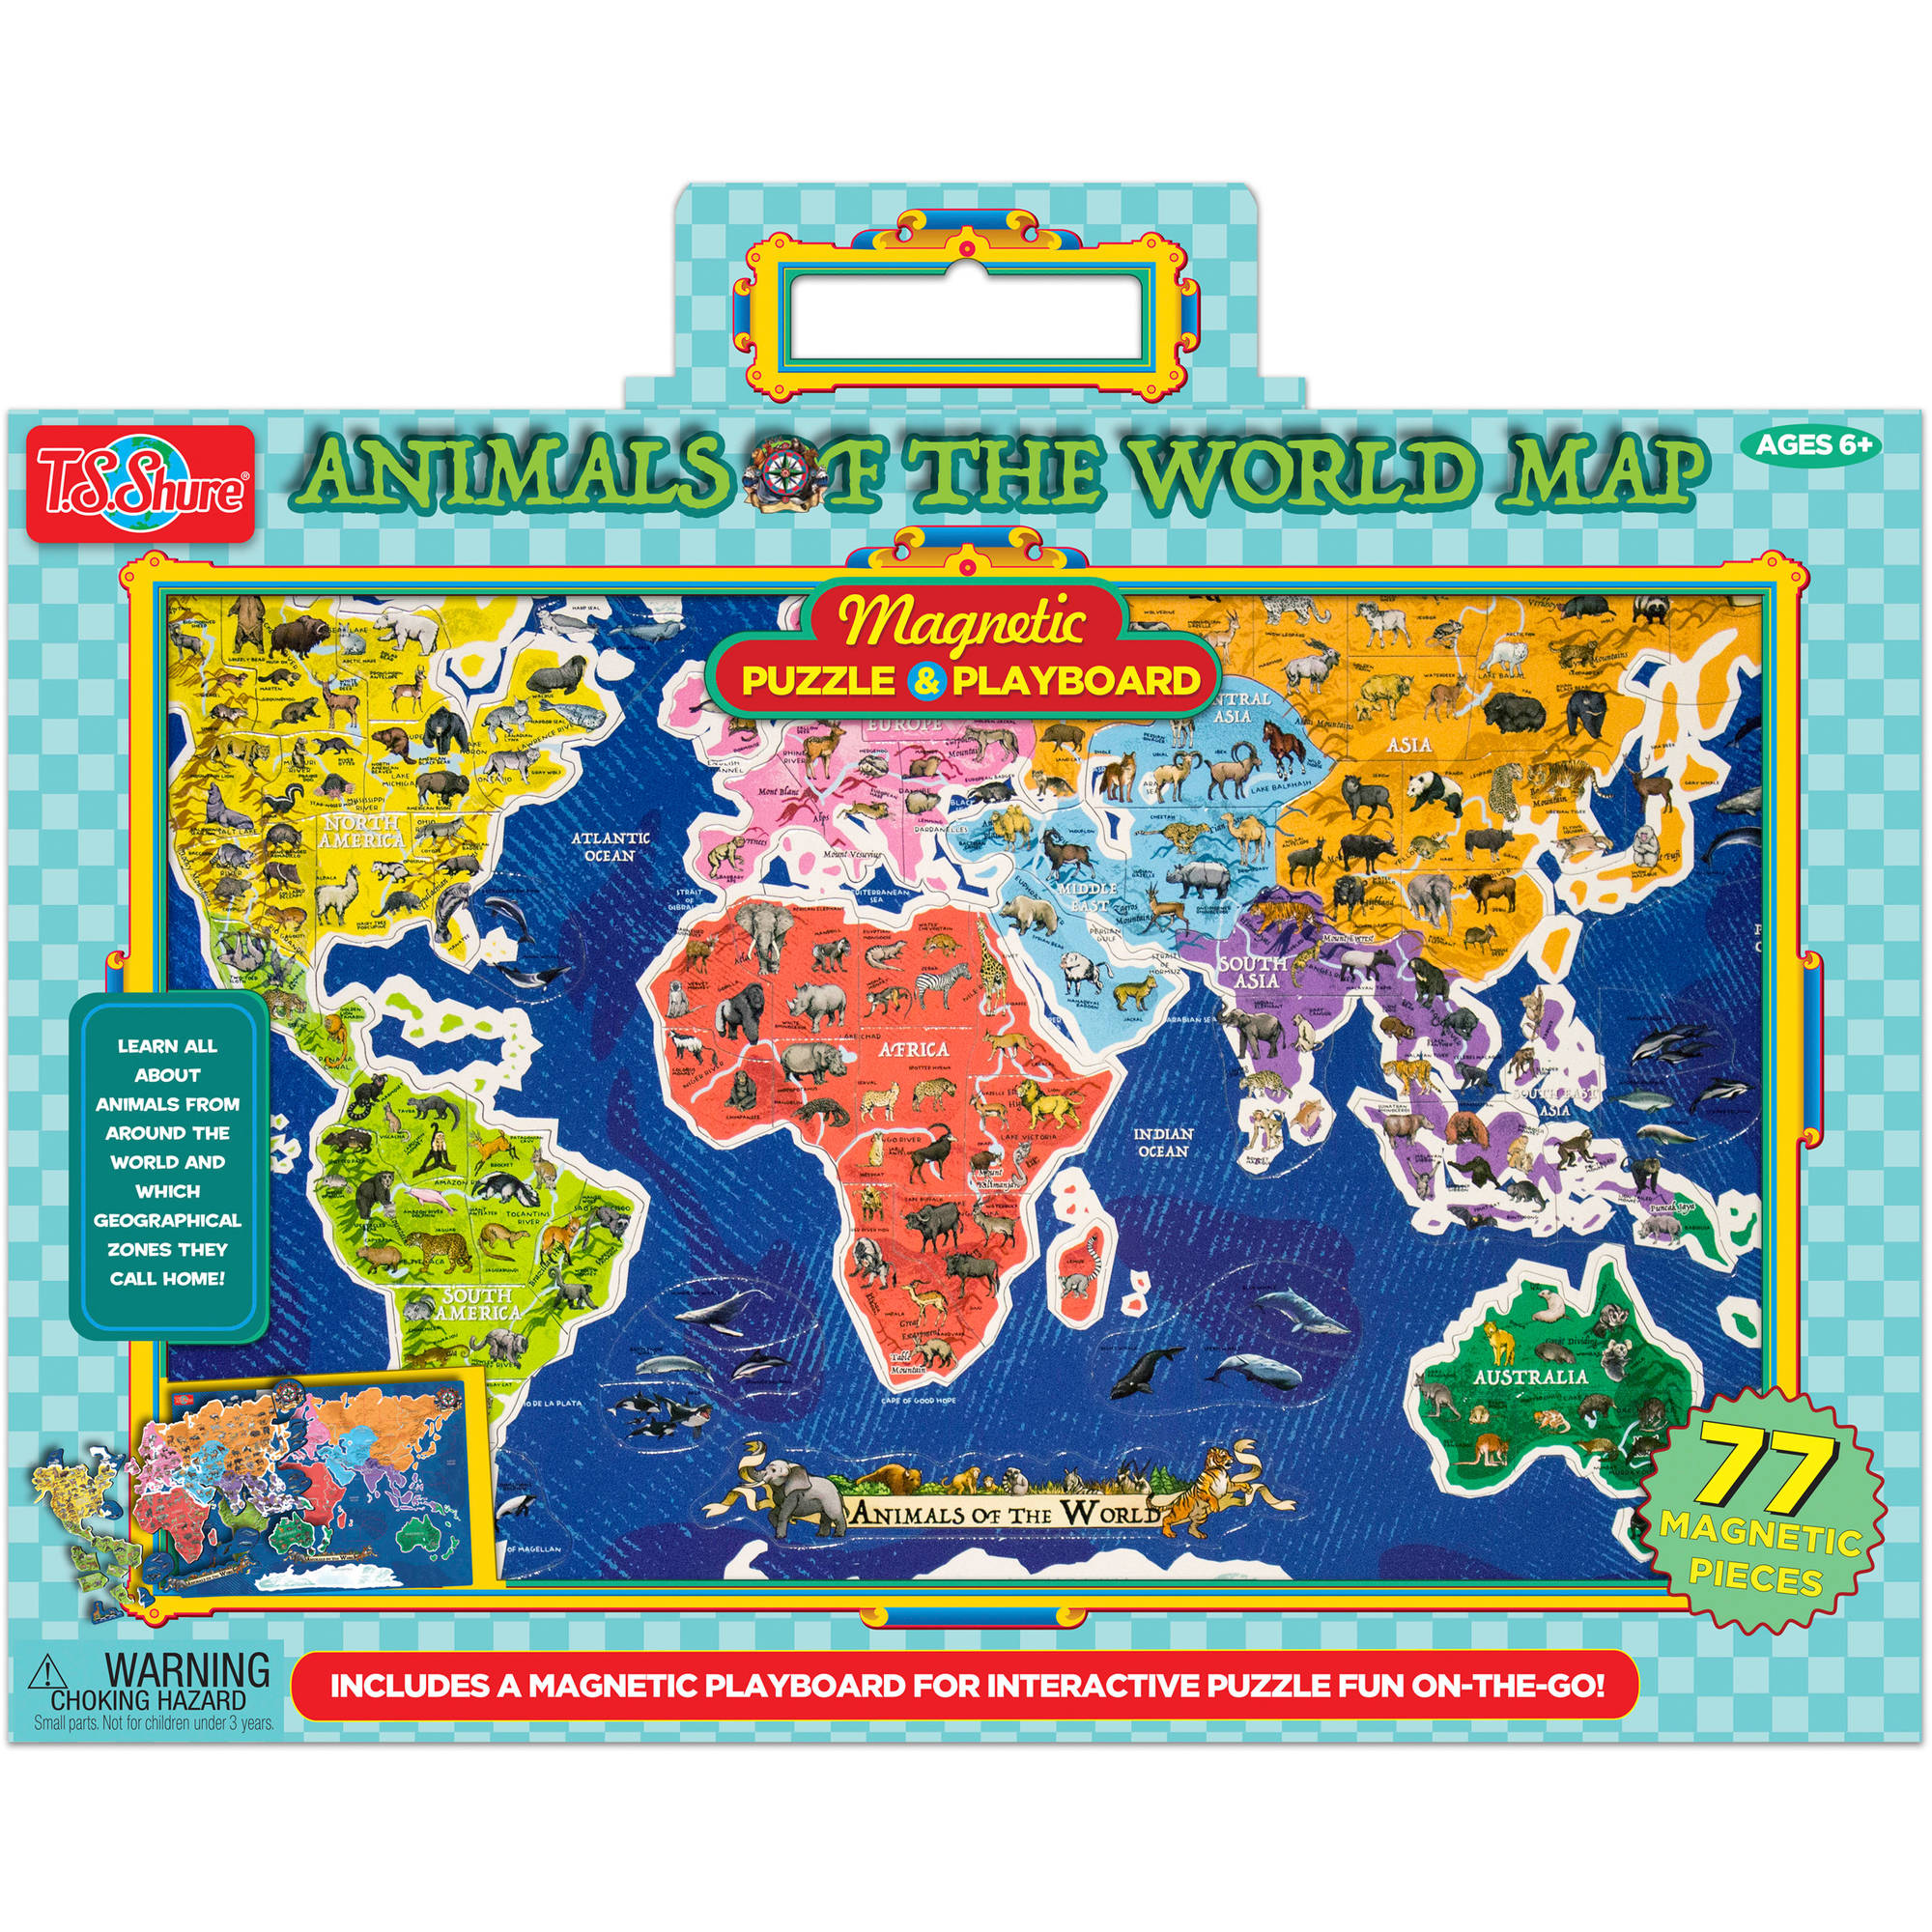 Ts shure animals of the world map magnetic playboard and puzzle ts shure animals of the world map magnetic playboard and puzzle walmart gumiabroncs Choice Image